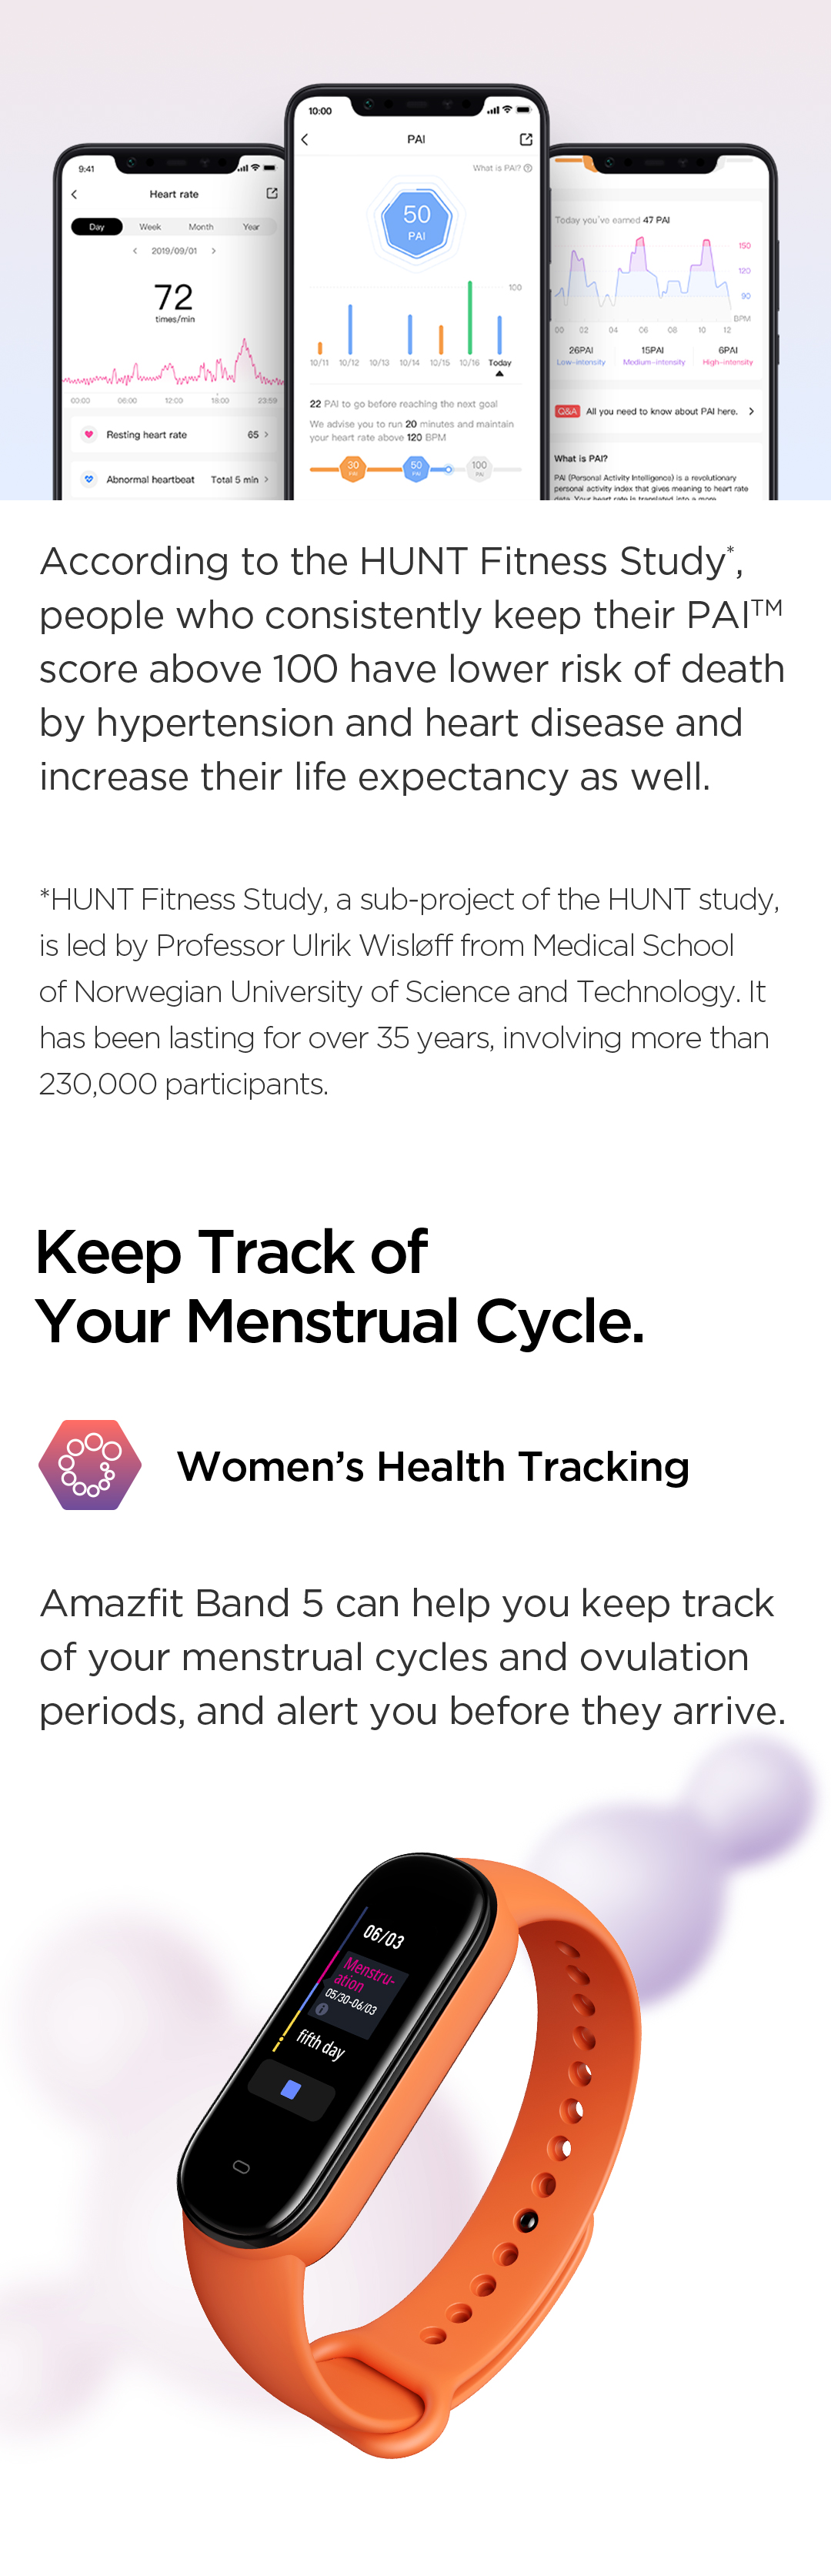 Zepp Health APP and Women's Health Tracking Function